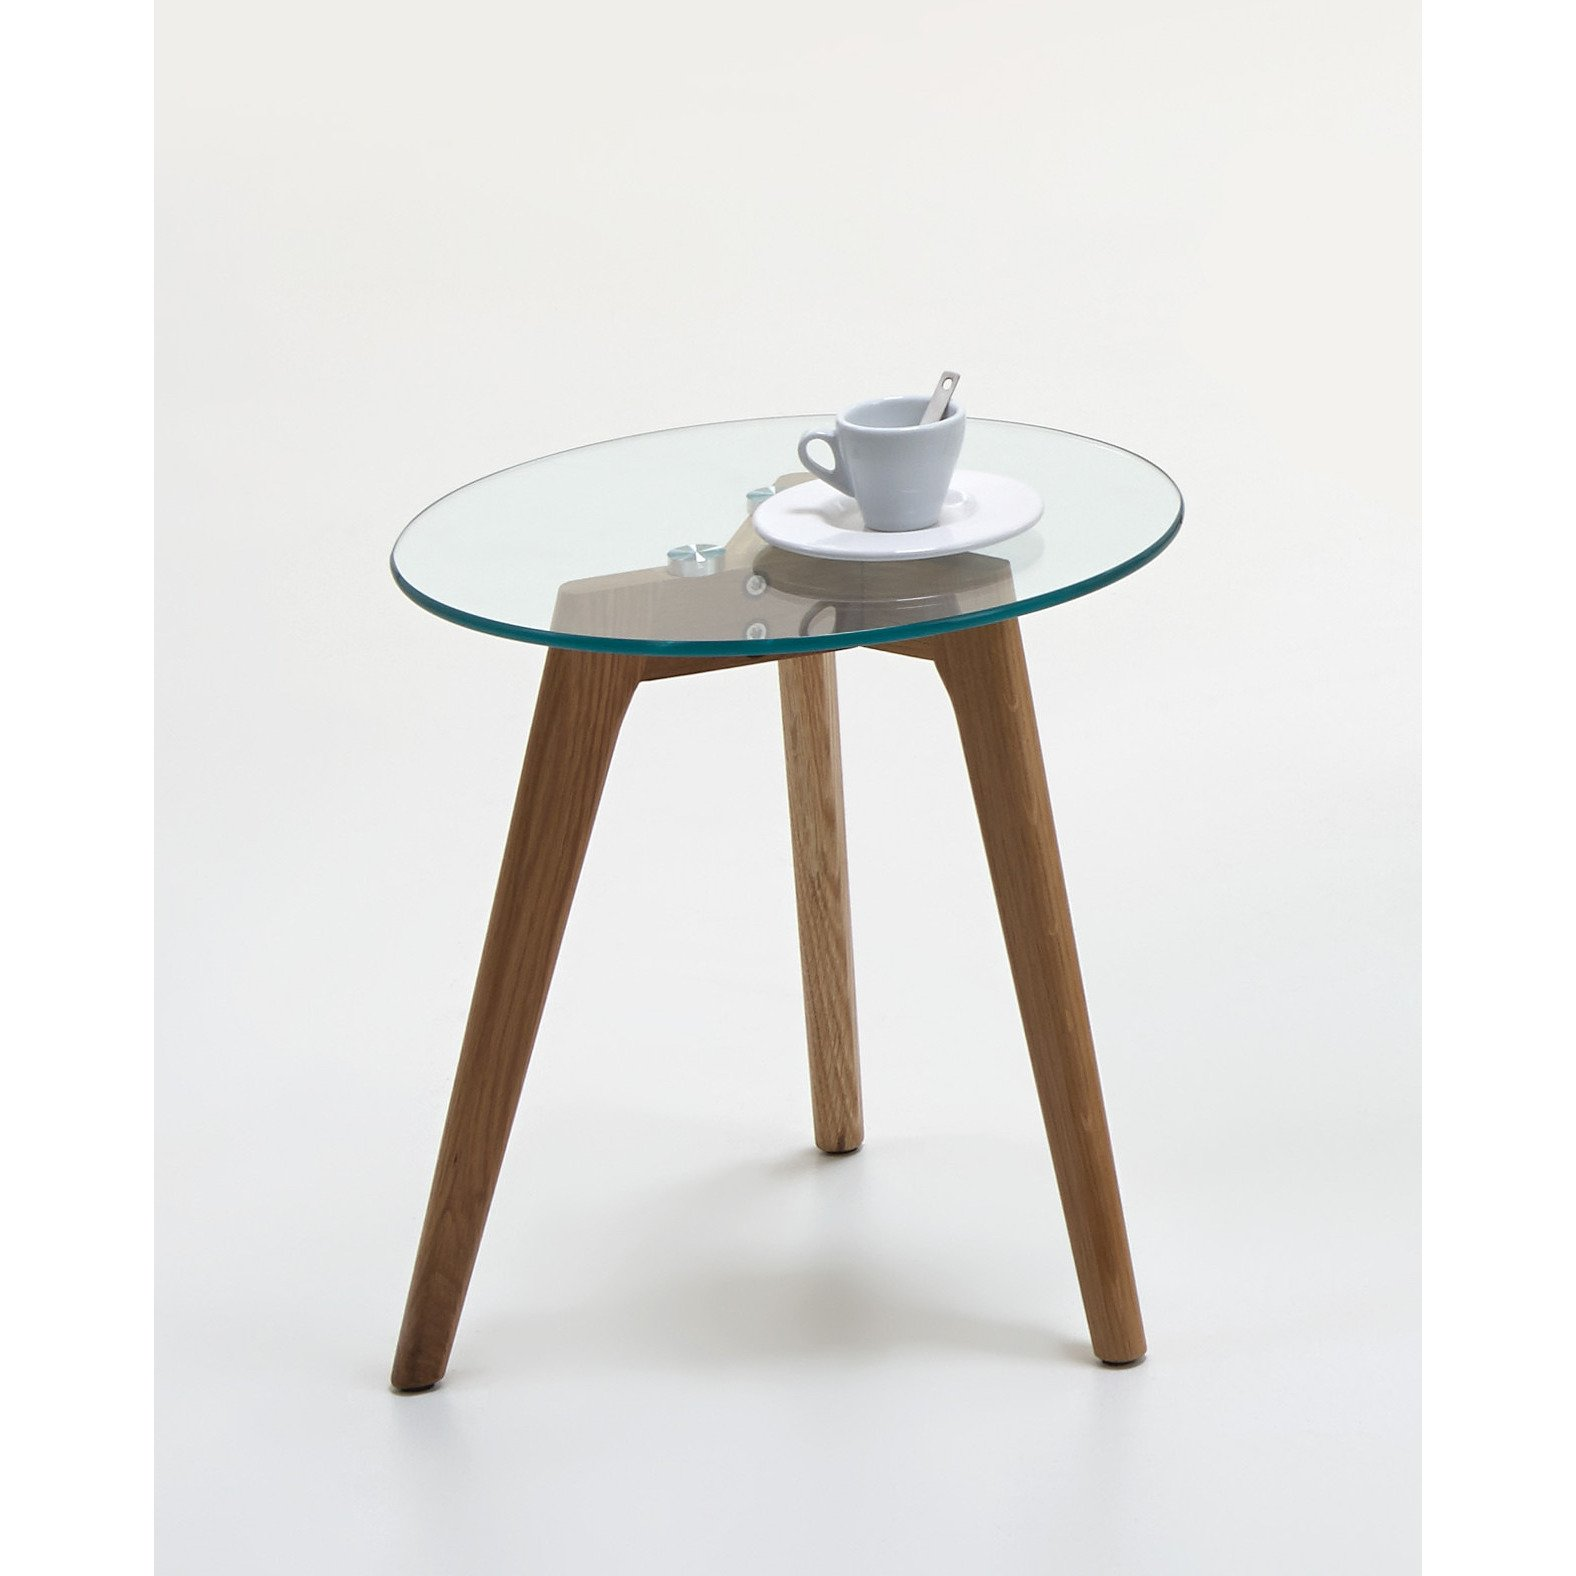 scandinavian style coffee end table glass wood side tables tripod entrance bench with coat rack metal base lazy boy mirrors decor order laura ashley catalogue blue and white lamps